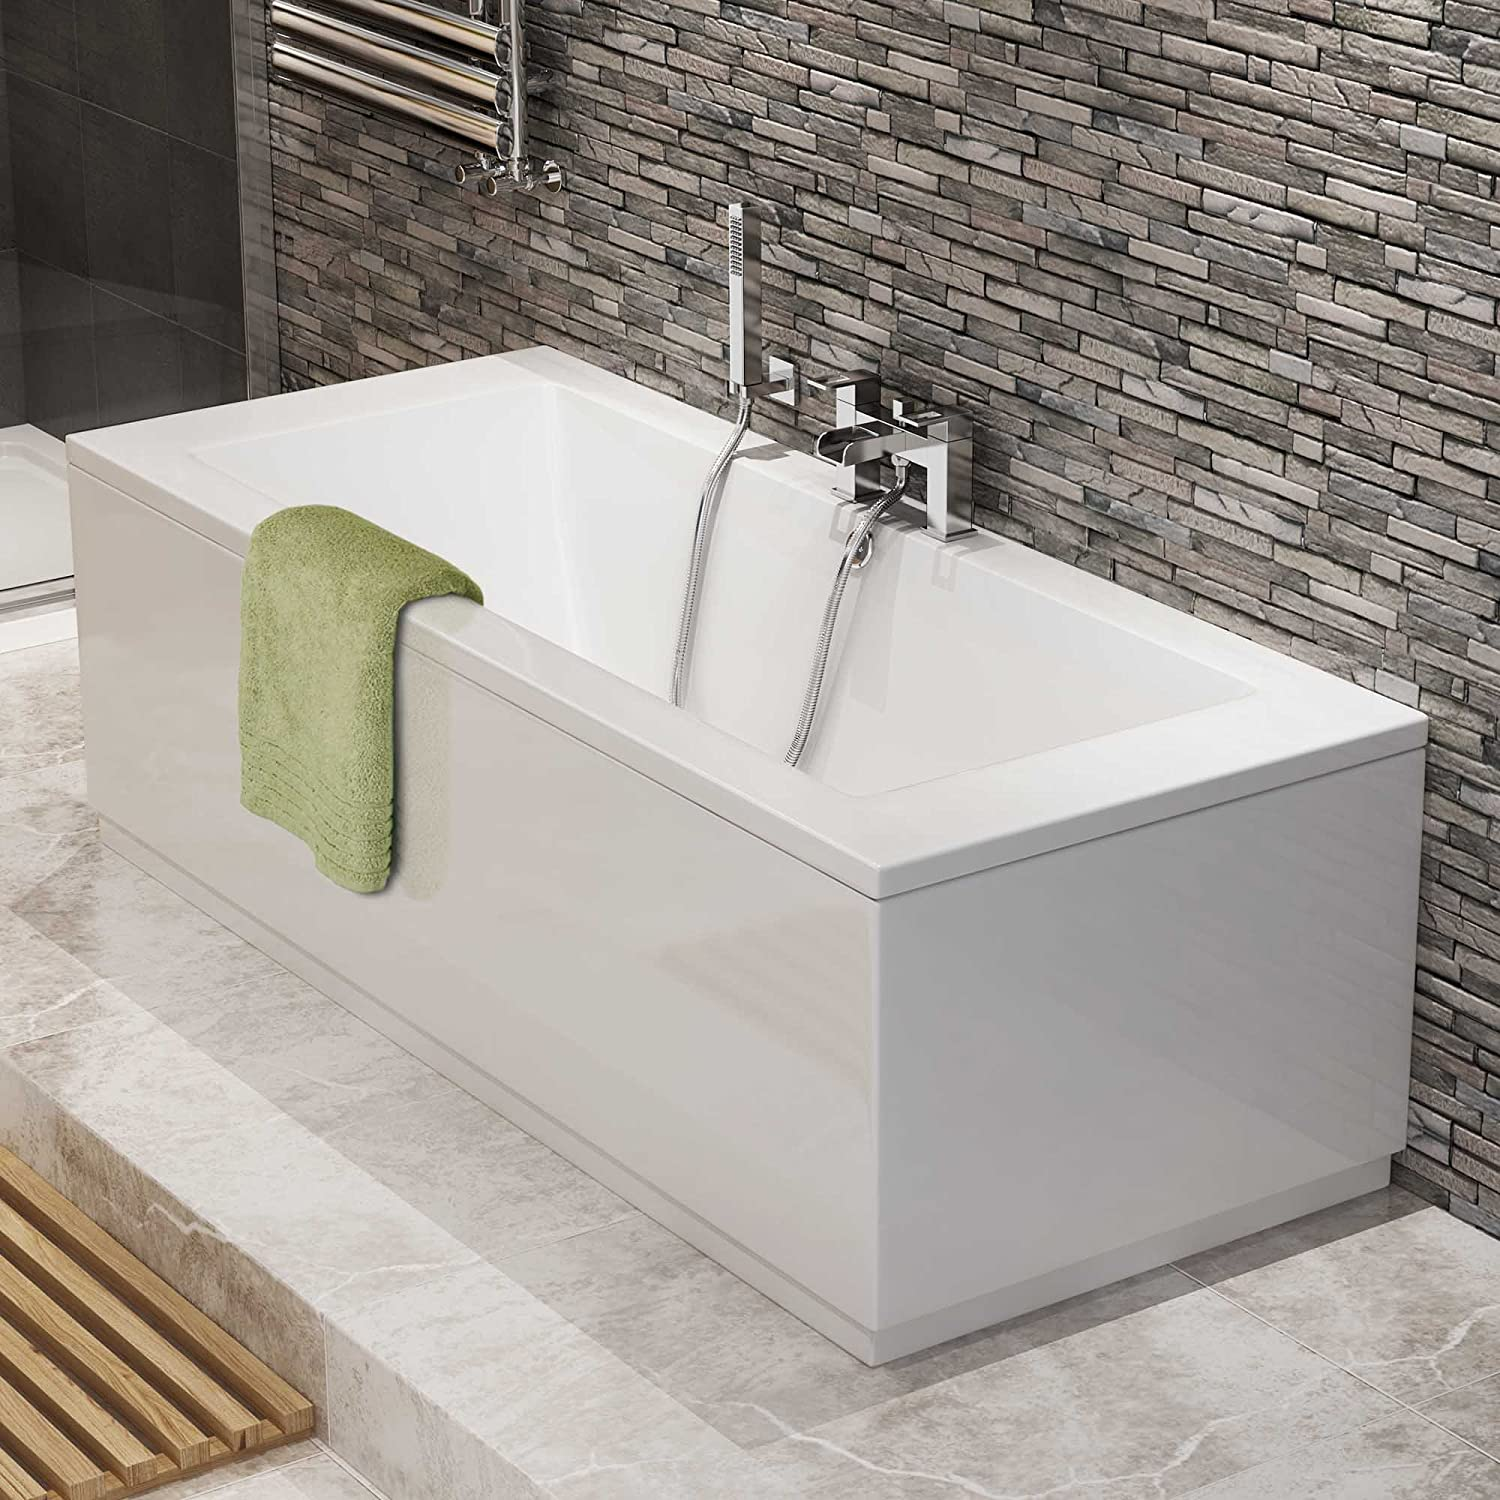 1700 Mm Luxury Square Double Ended Bath Modern Straight White Bathroom  Bathtub: IBathUK: Amazon.co.uk: Kitchen U0026 Home